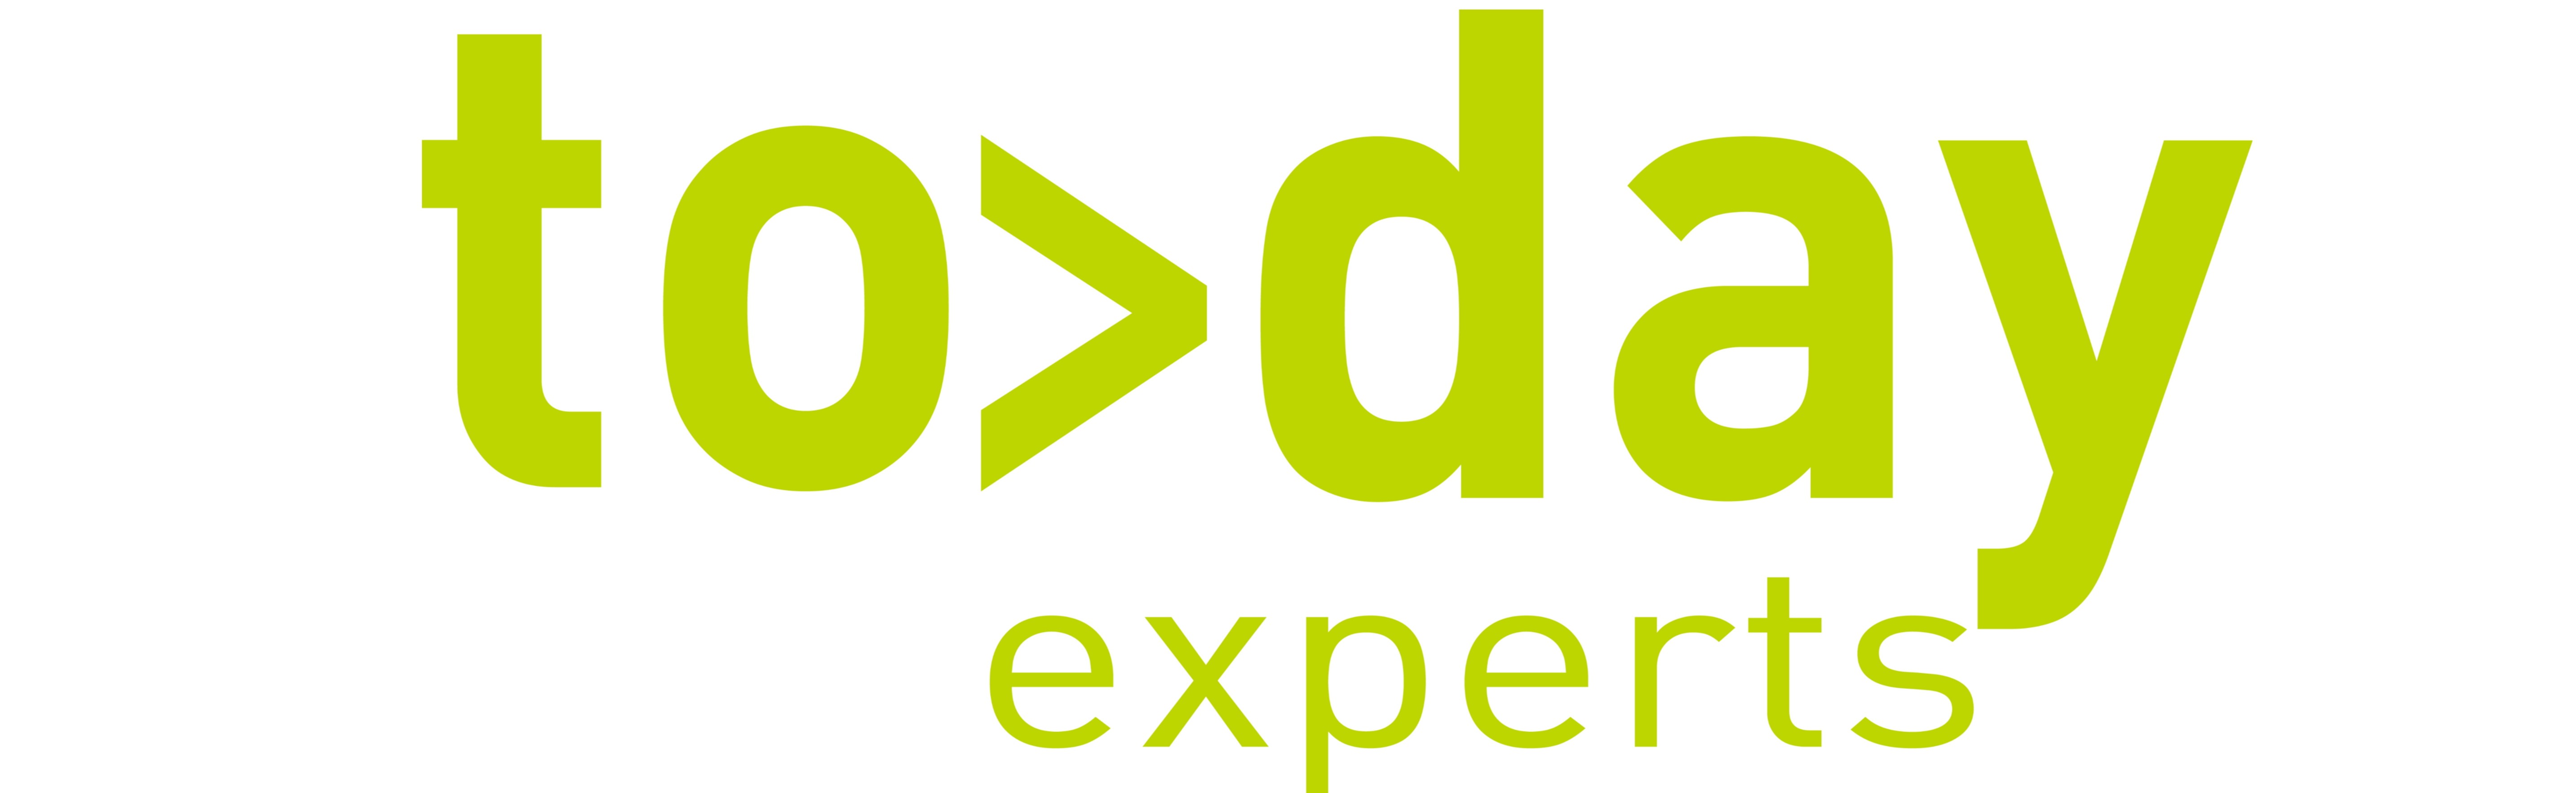 Today Experts OÖ GmbH_logo